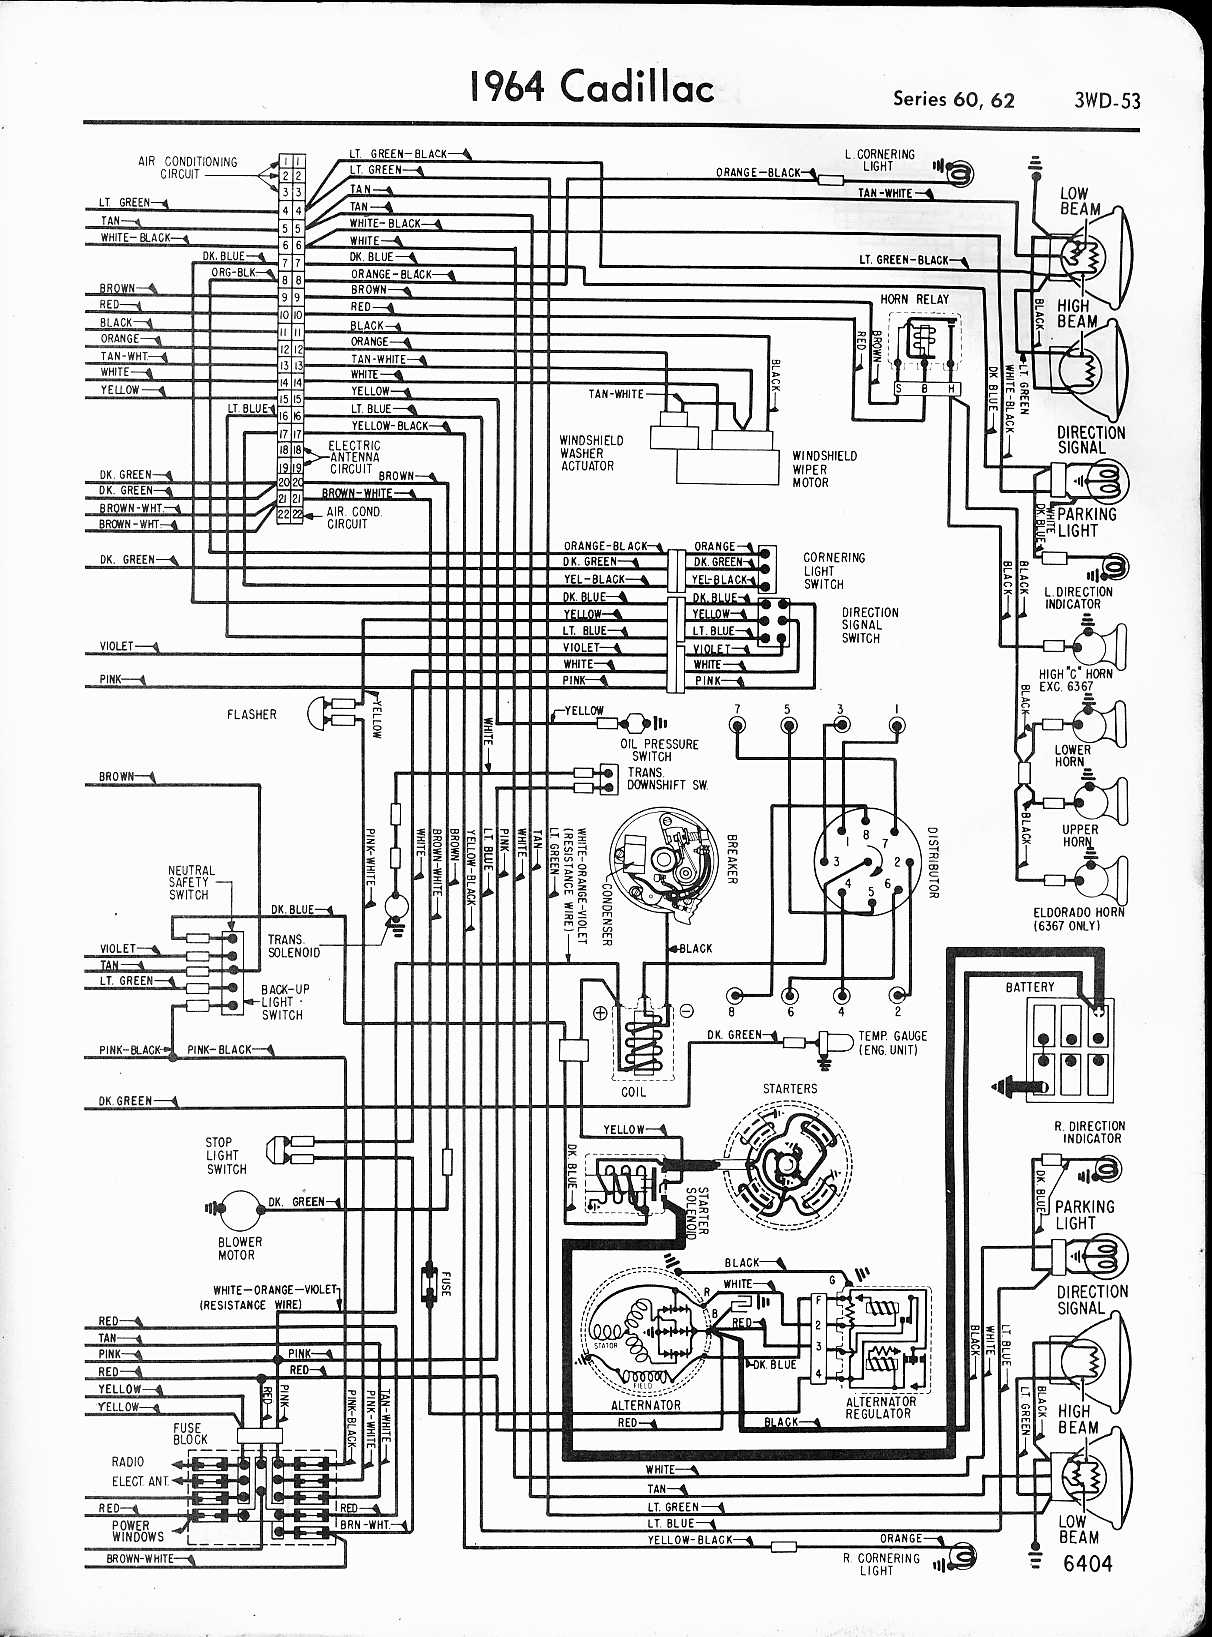 64 cadillac wiring diagram wiring diagrams u2022 rh autonomia co wiring diagram for 2004 cadillac deville wiring diagram cadillac 1966